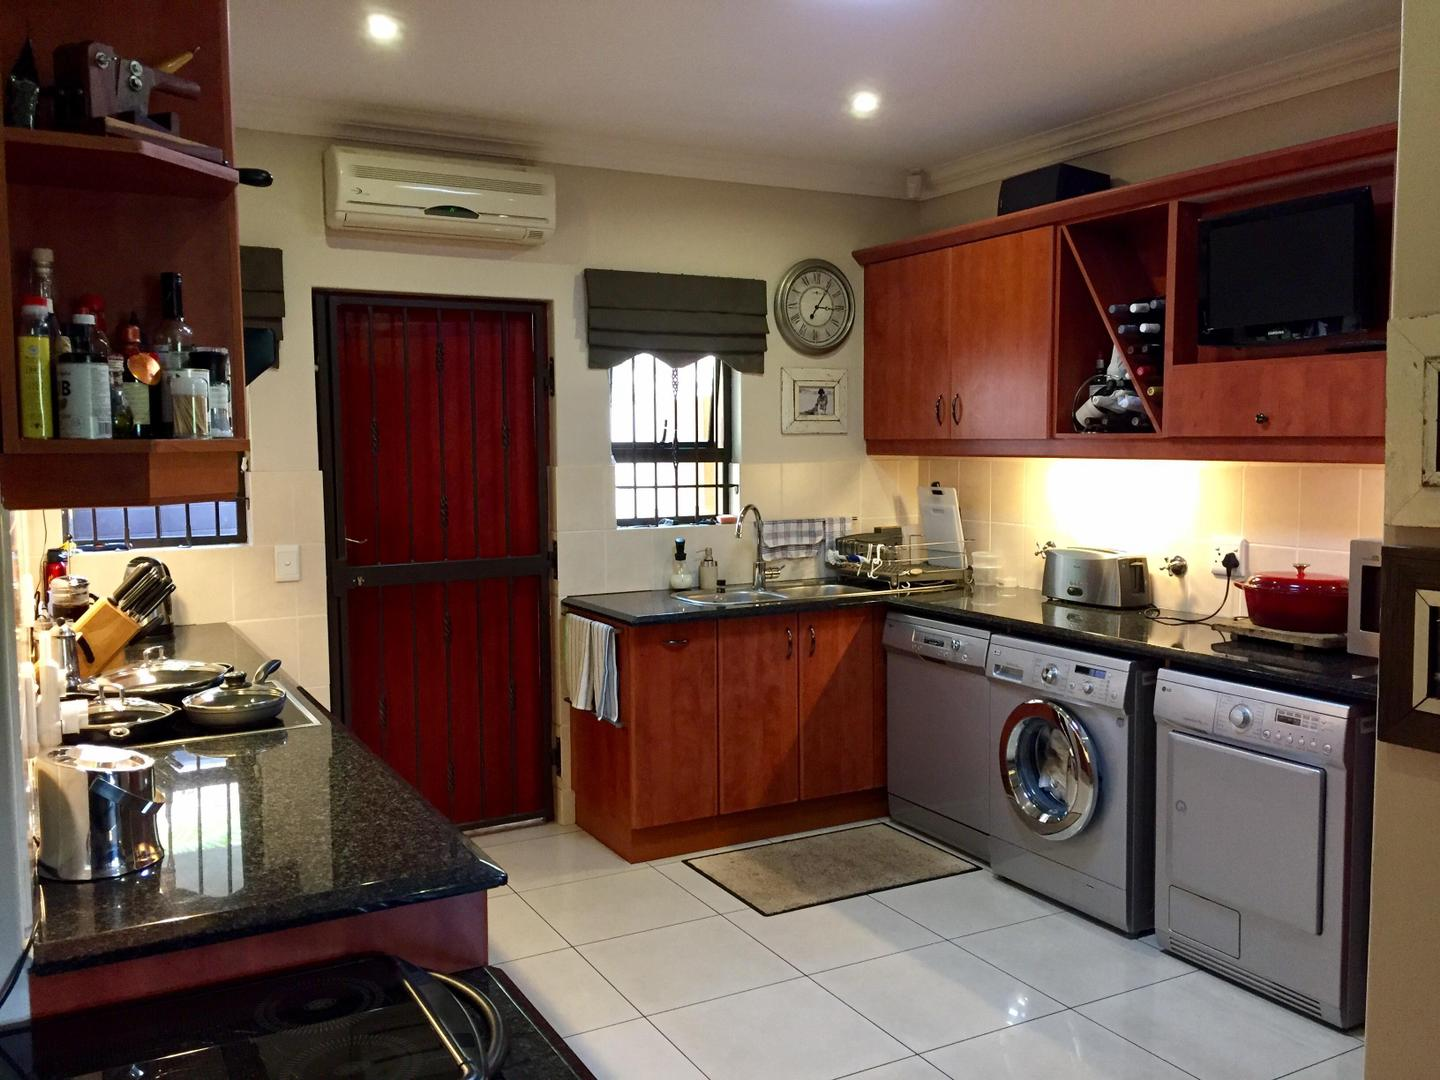 3 Bedroom House for sale in La Lucia 1801093 : photo#10